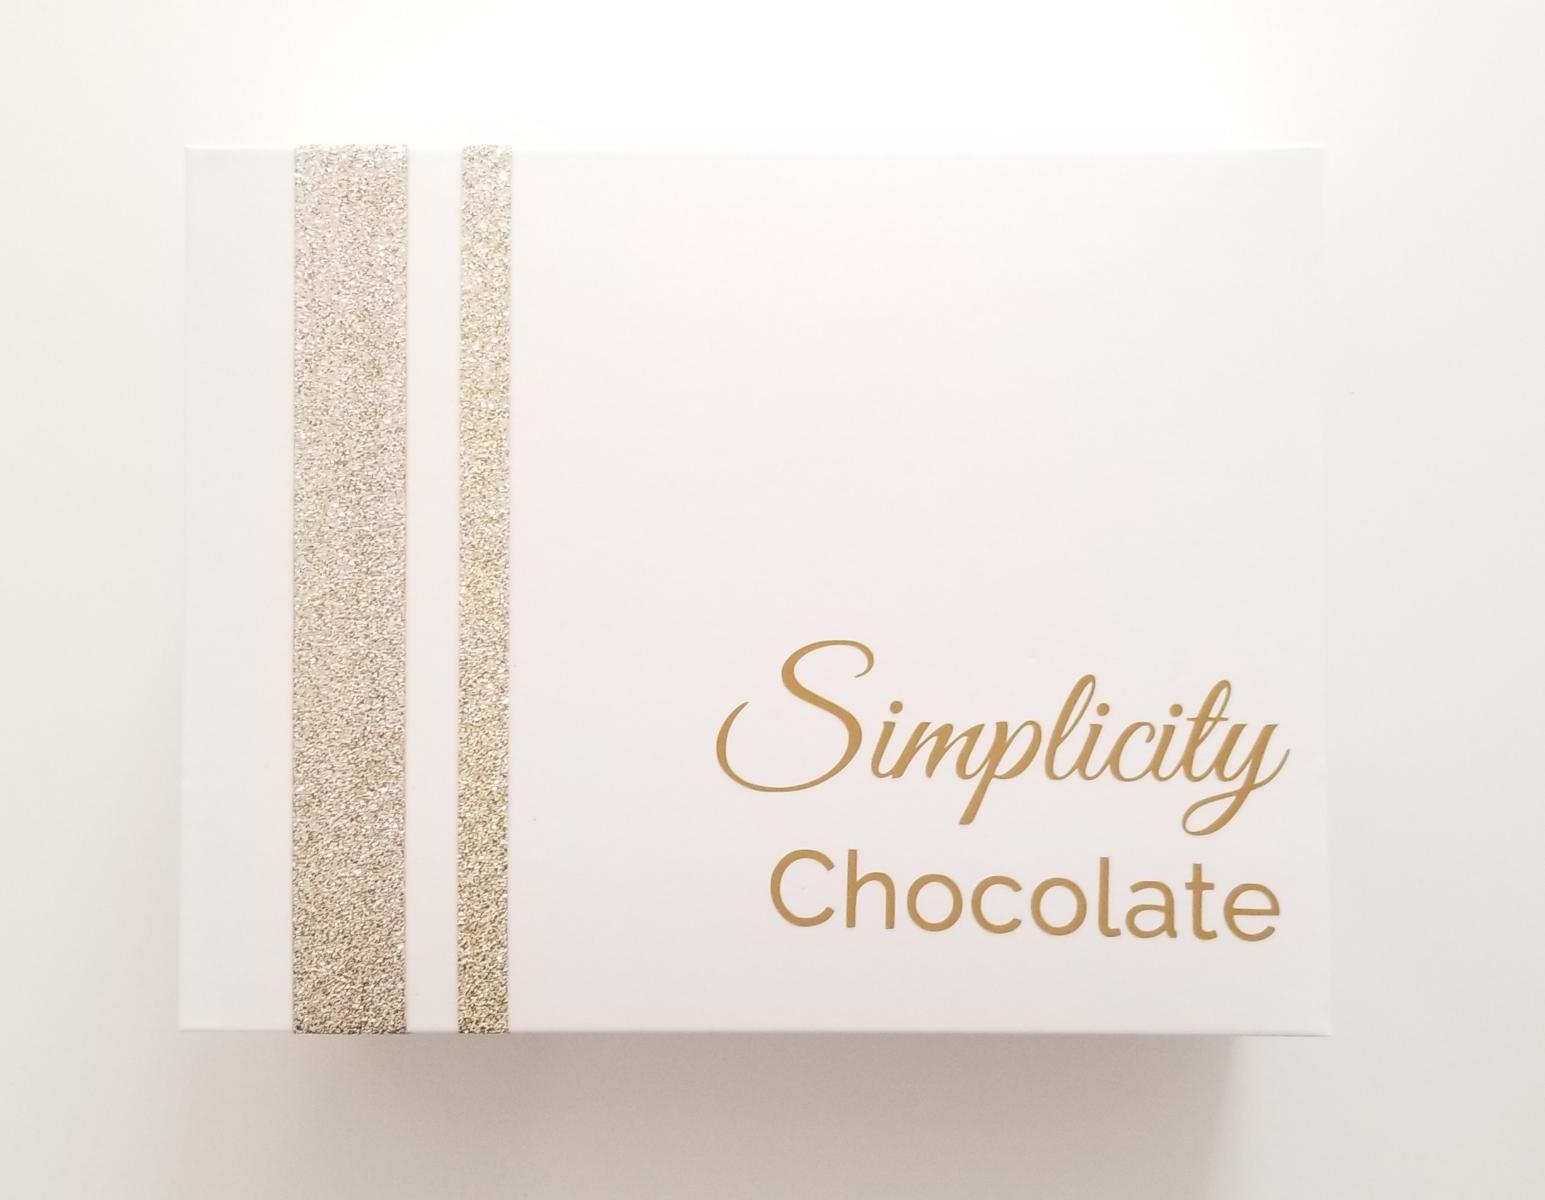 The lid of The Simplicity Chocolate Nostalgia Box with gold accents and the signature logo in gold writing.